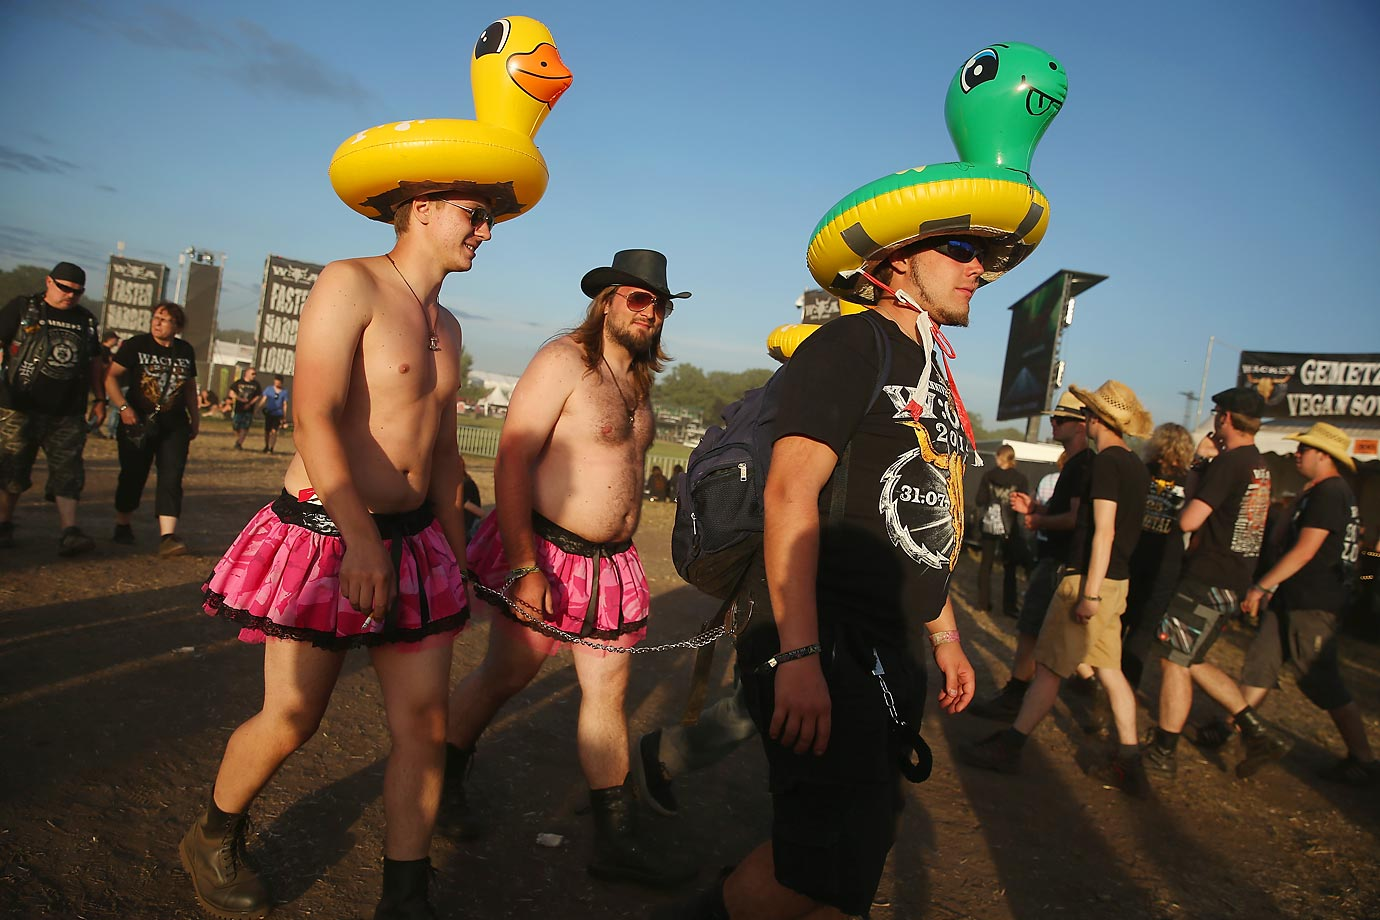 Warning: Head-banging can impair your fashion sense, as evidenced these burghers in Wacken, a village in northern Germany that has hosted the annual four-day festival, which attracts 75,000 heavy metal fans from around the world, since 1990.